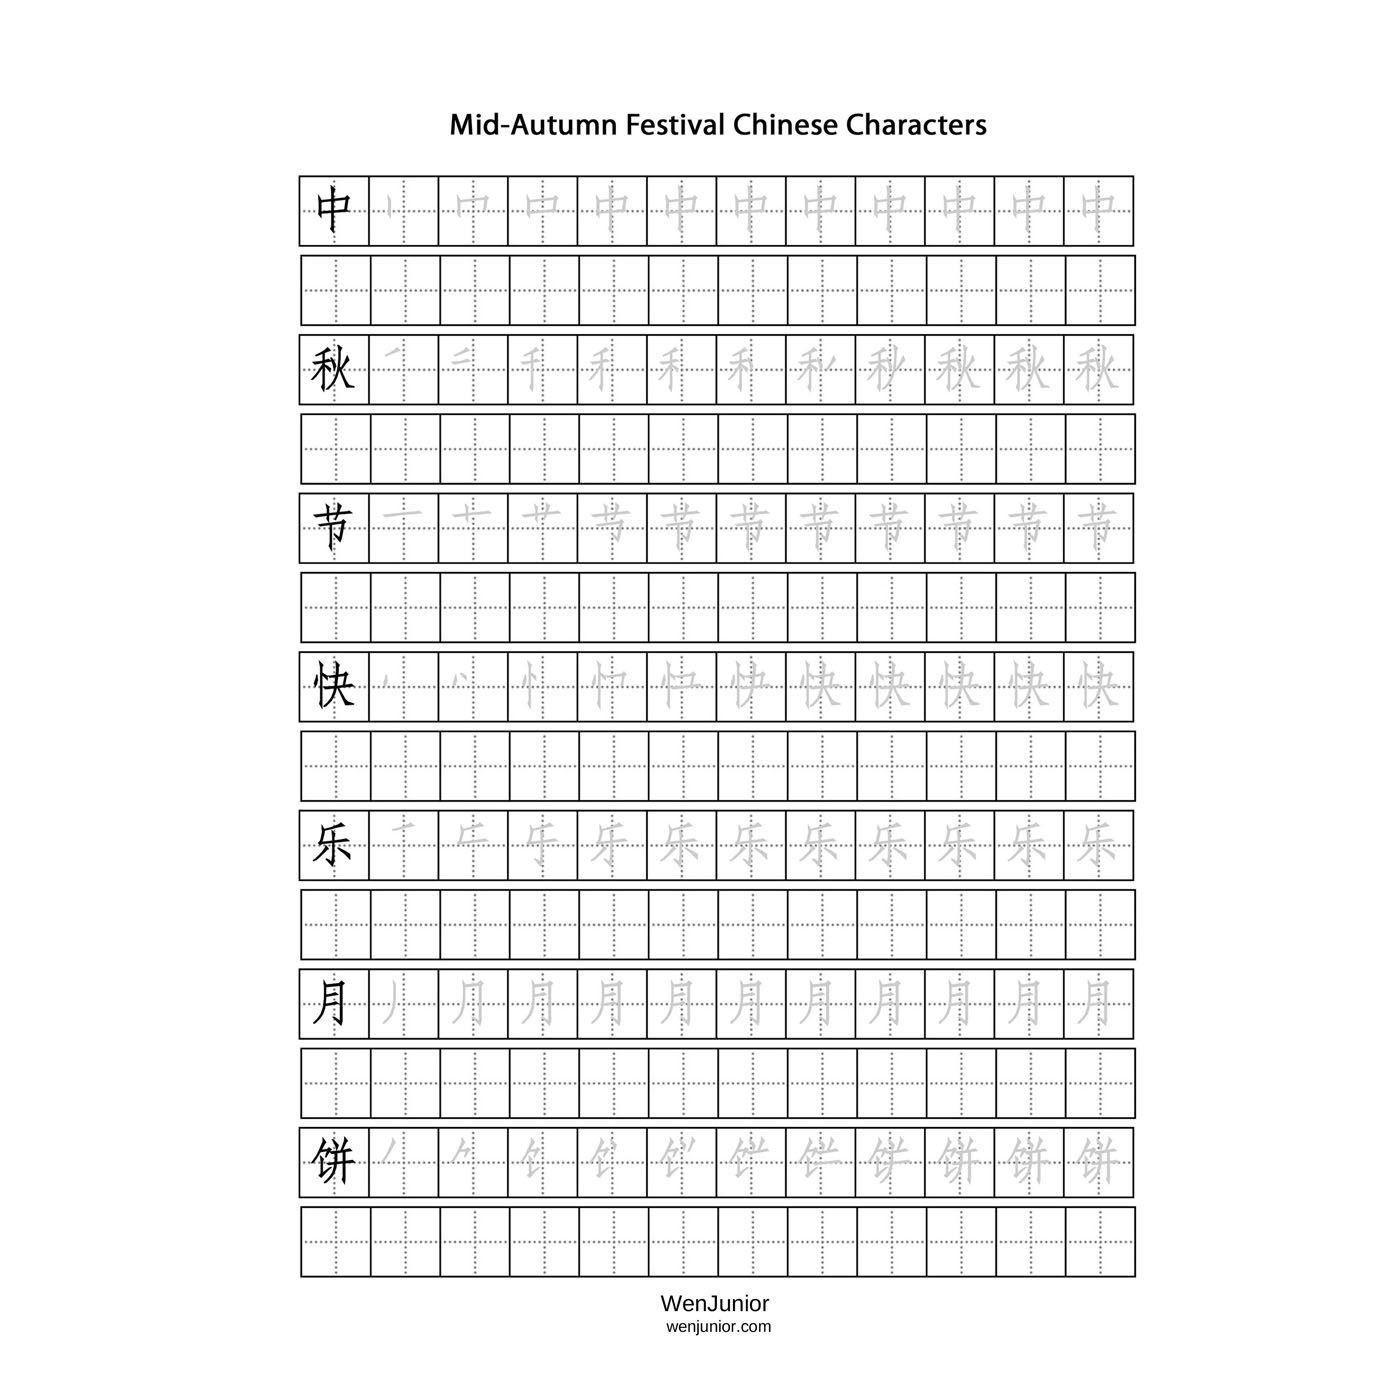 Hanzi Grids | Create Grid Templates and Worksheets for Practising ...